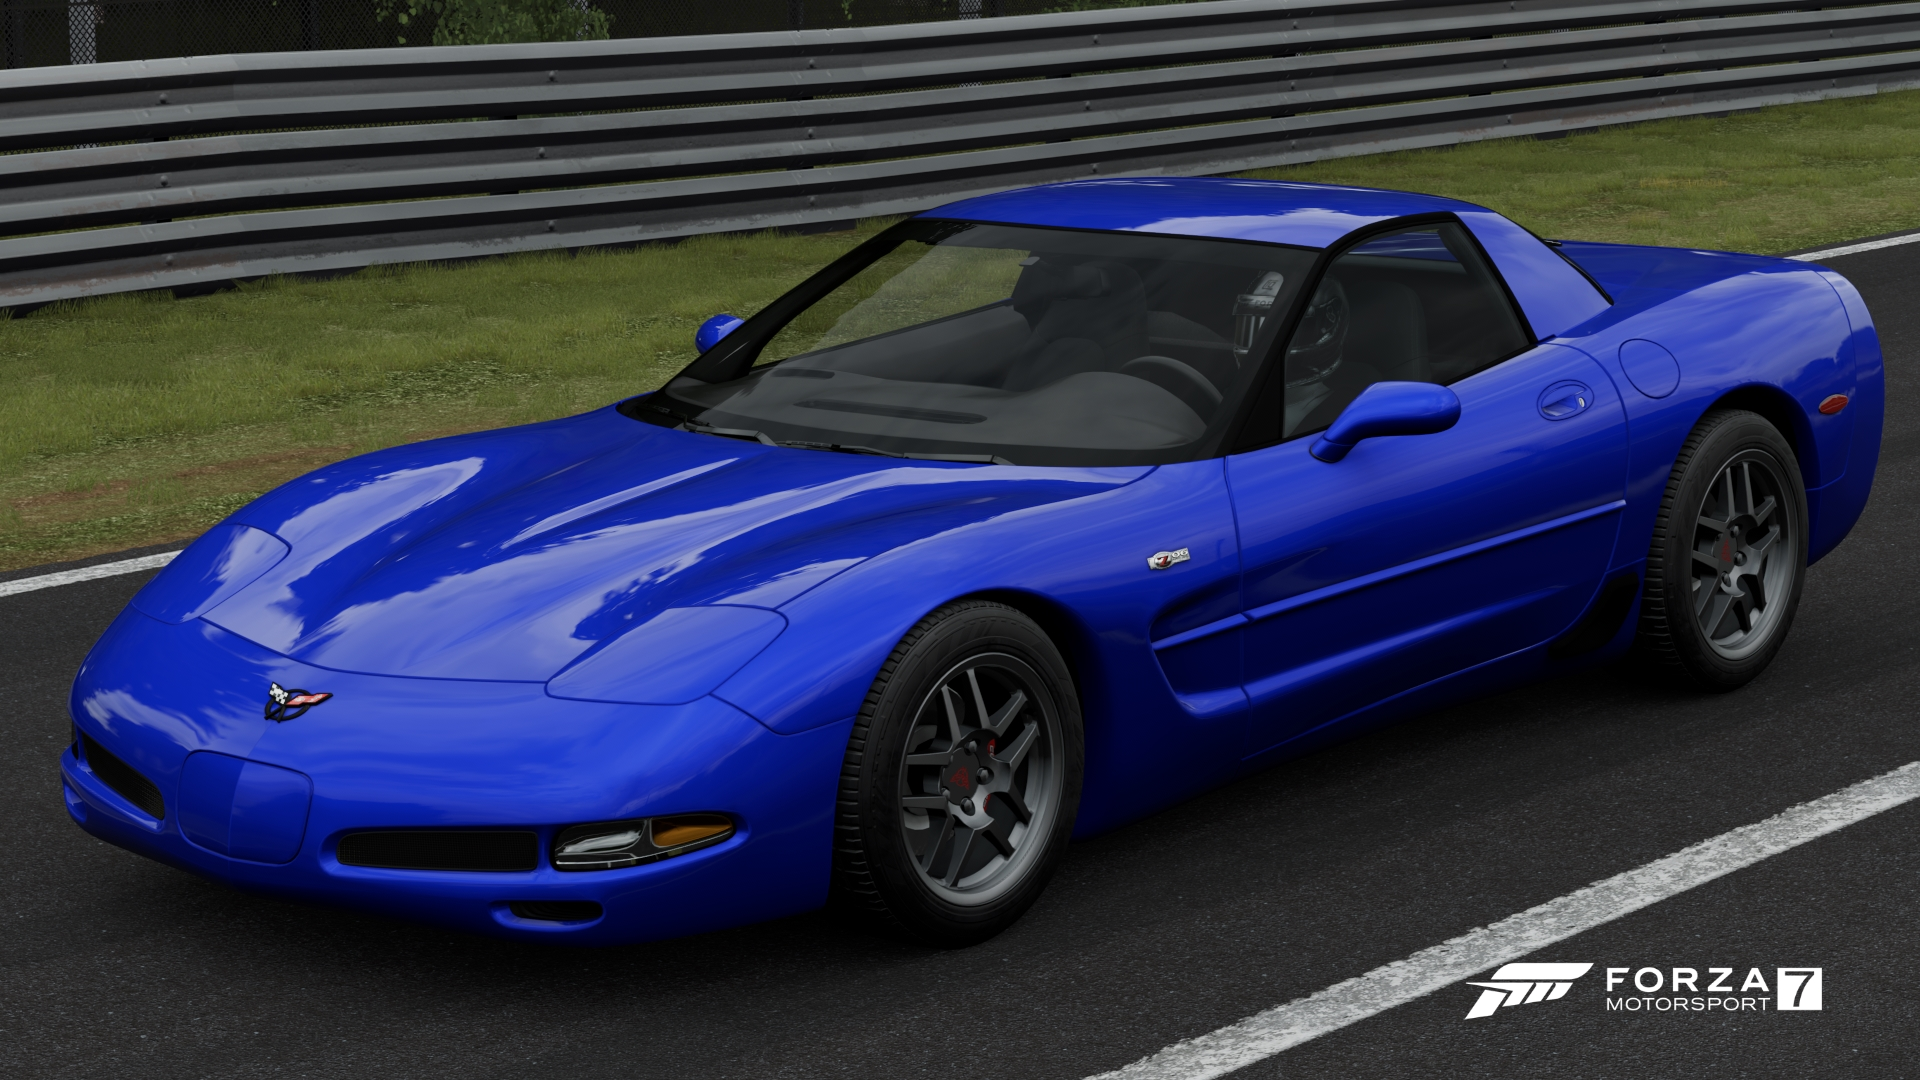 2002 Chevrolet Corvette Z06 In Forza Motorsport 7